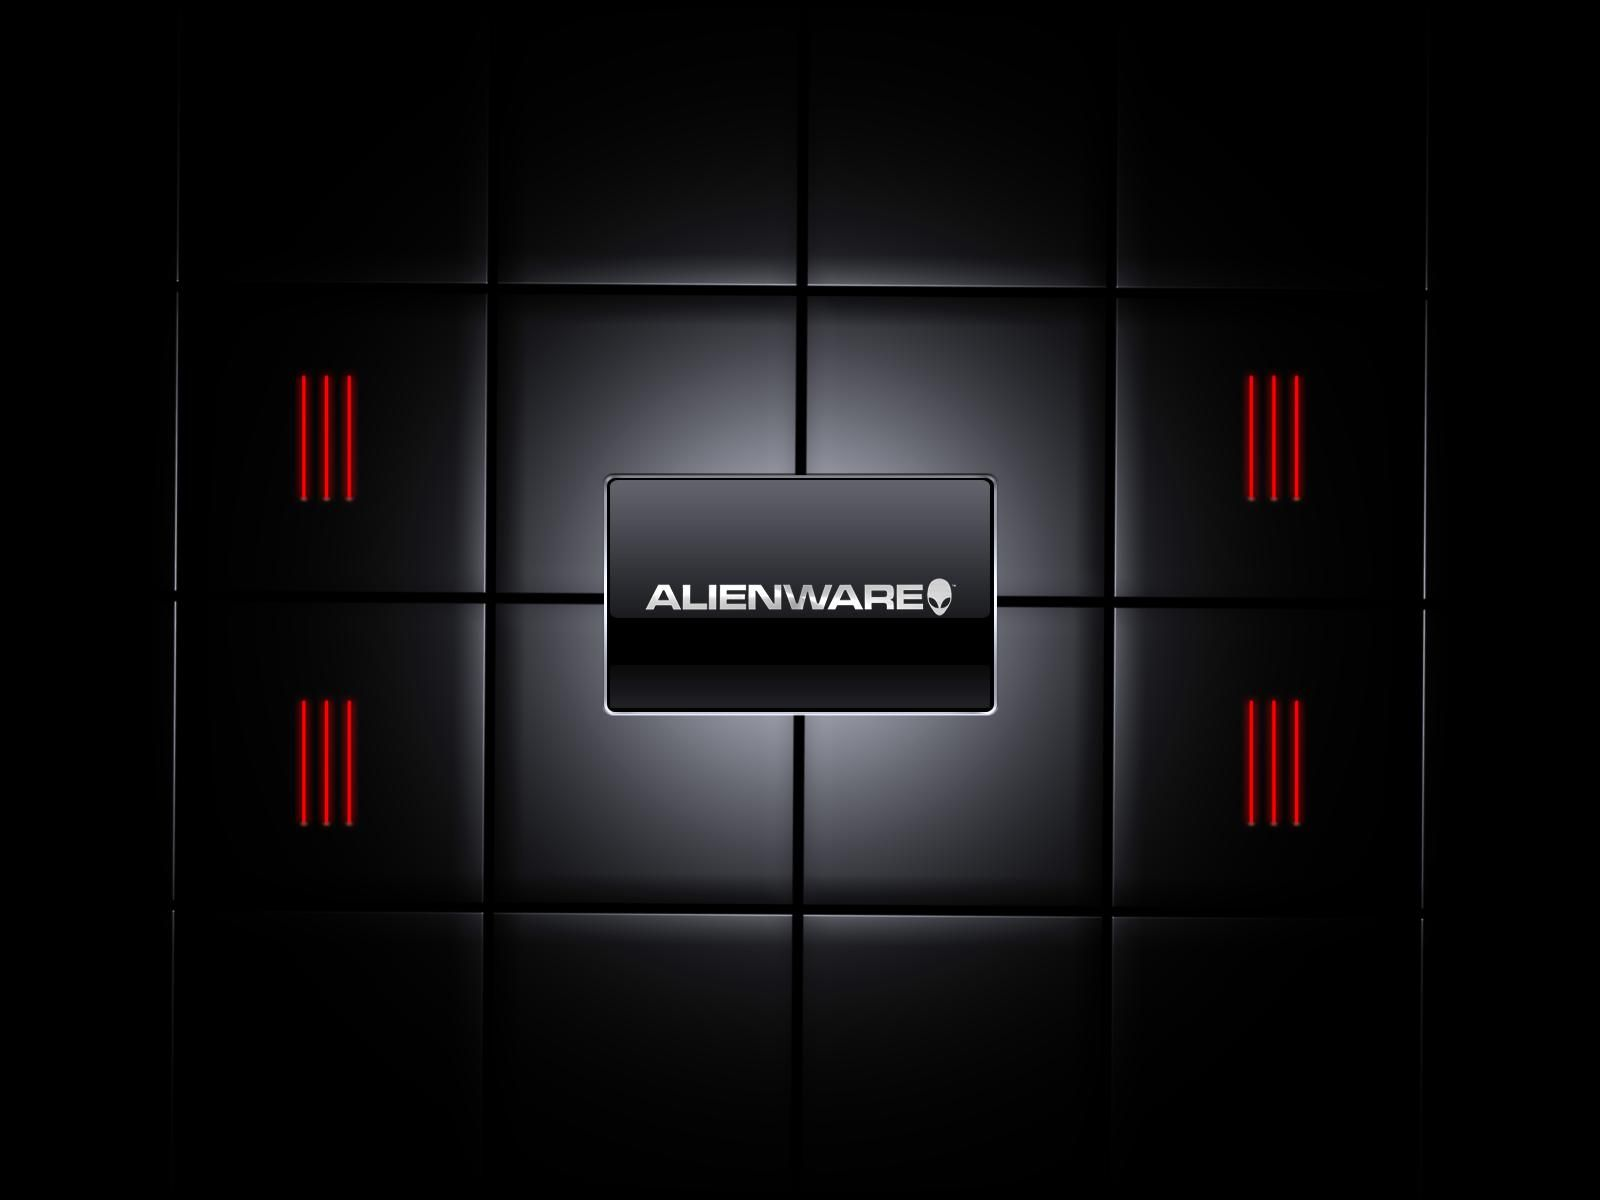 alienware wallpaper 4k